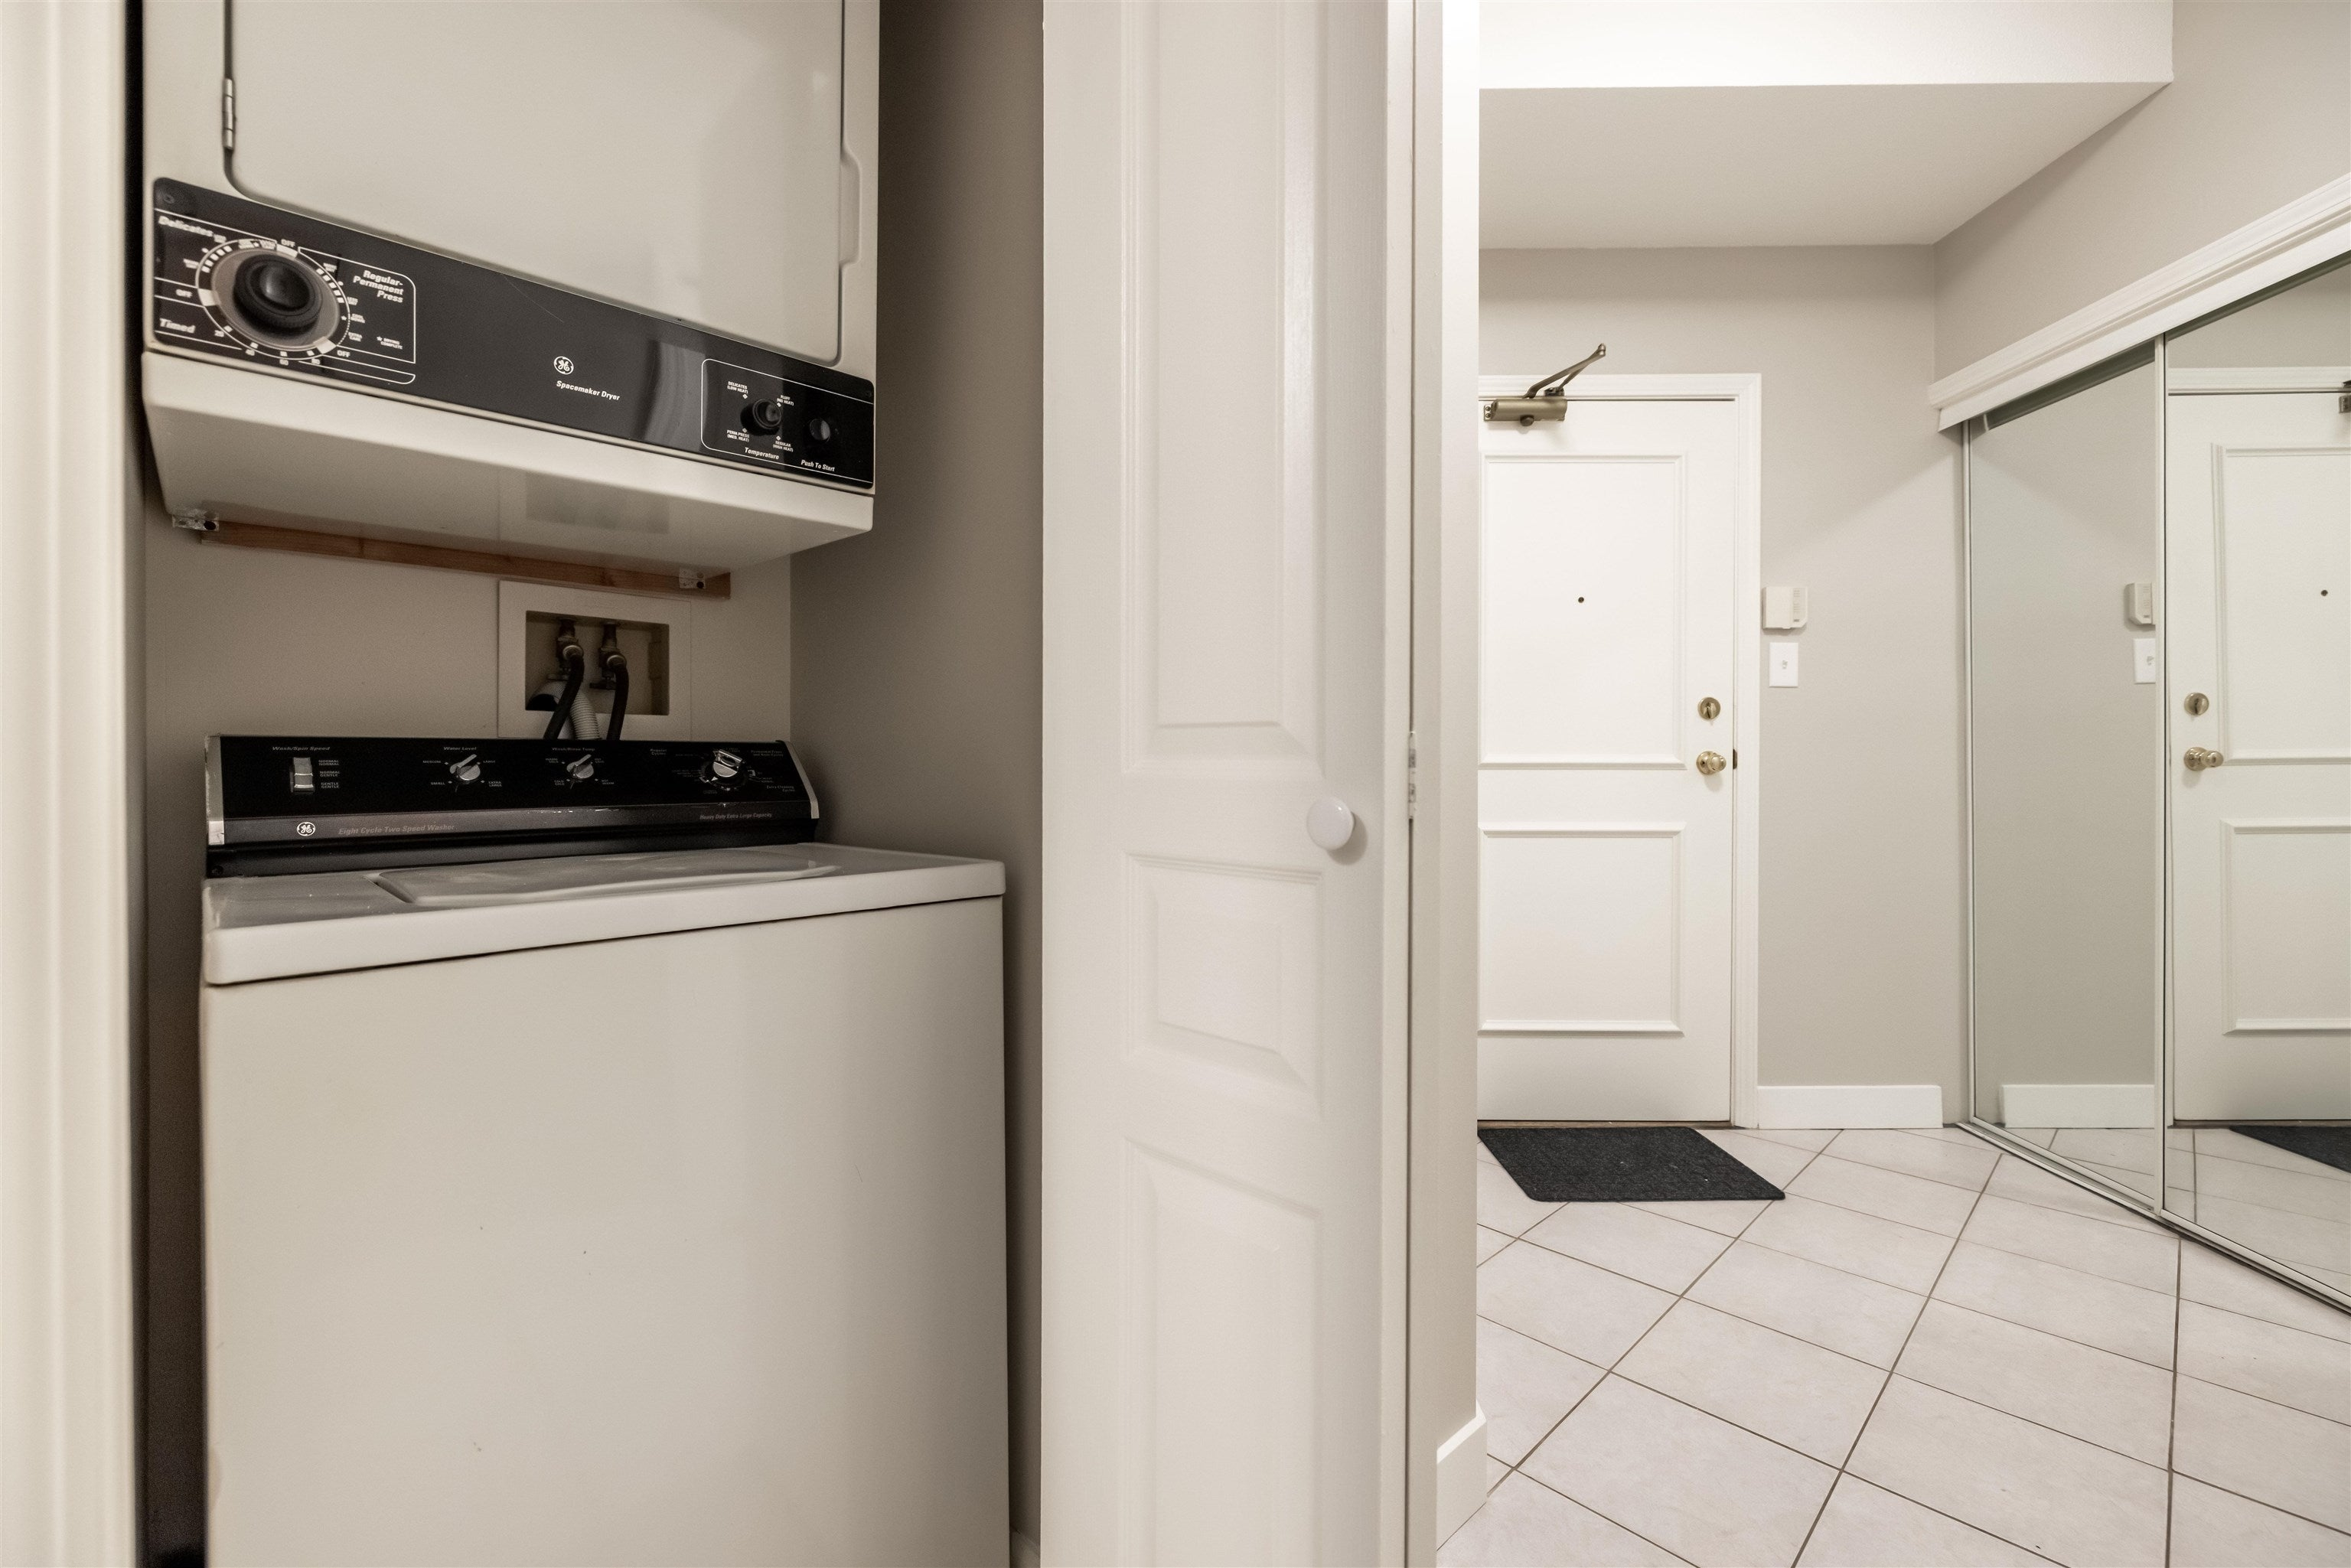 105 8139 121A STREET - Queen Mary Park Surrey Apartment/Condo for sale, 2 Bedrooms (R2623168) - #25